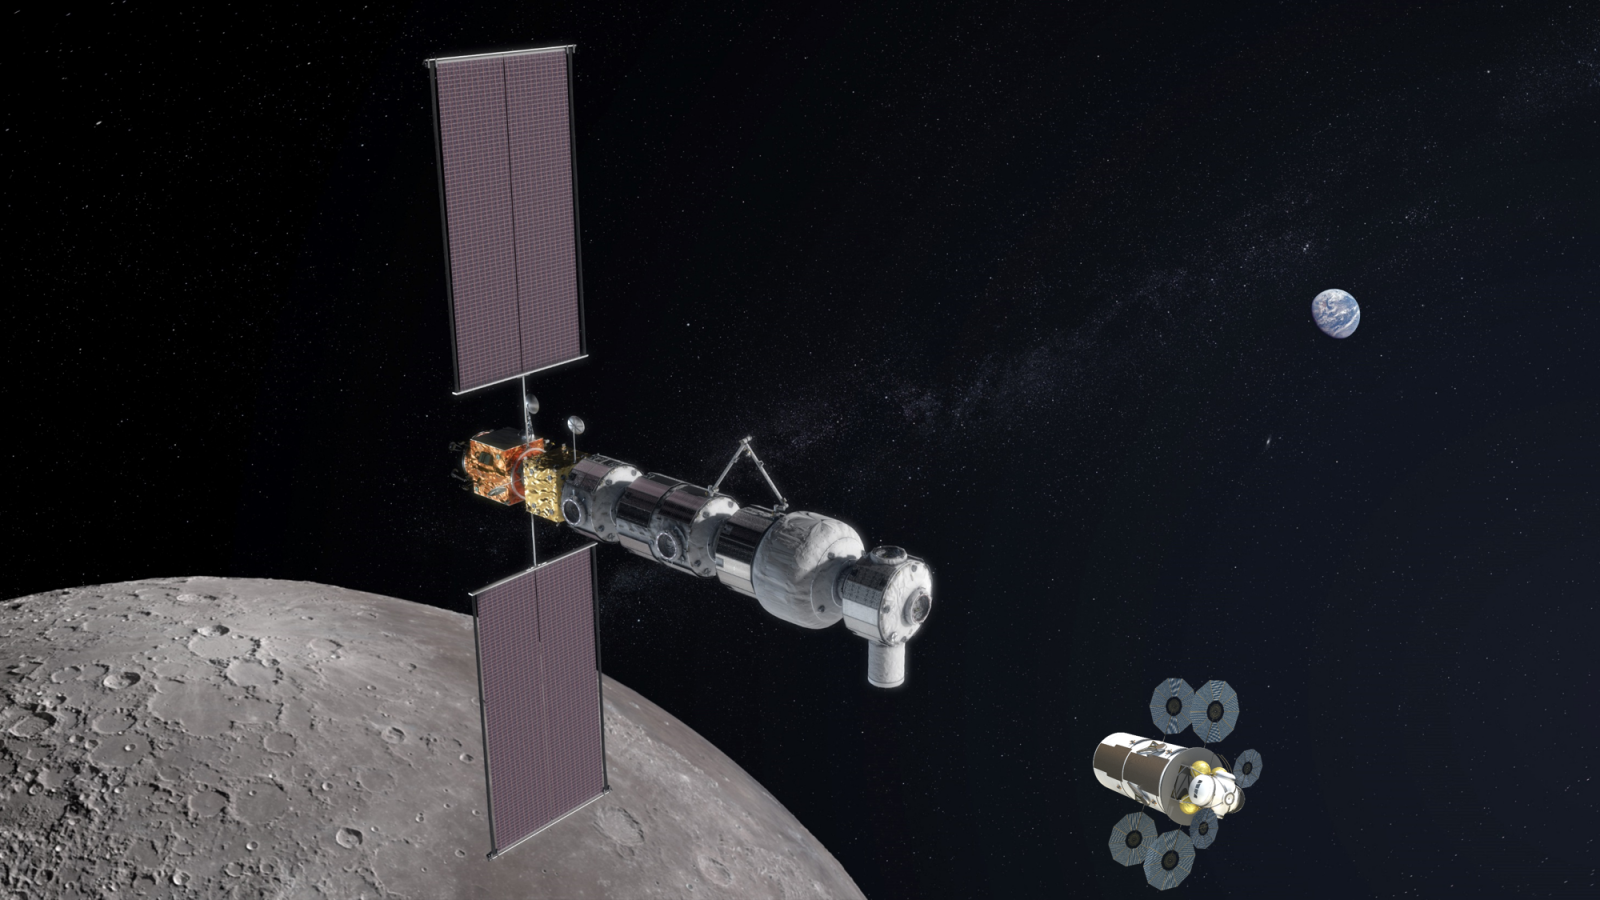 Space agency to establish moon base 'within a DECADE — NASA announcement